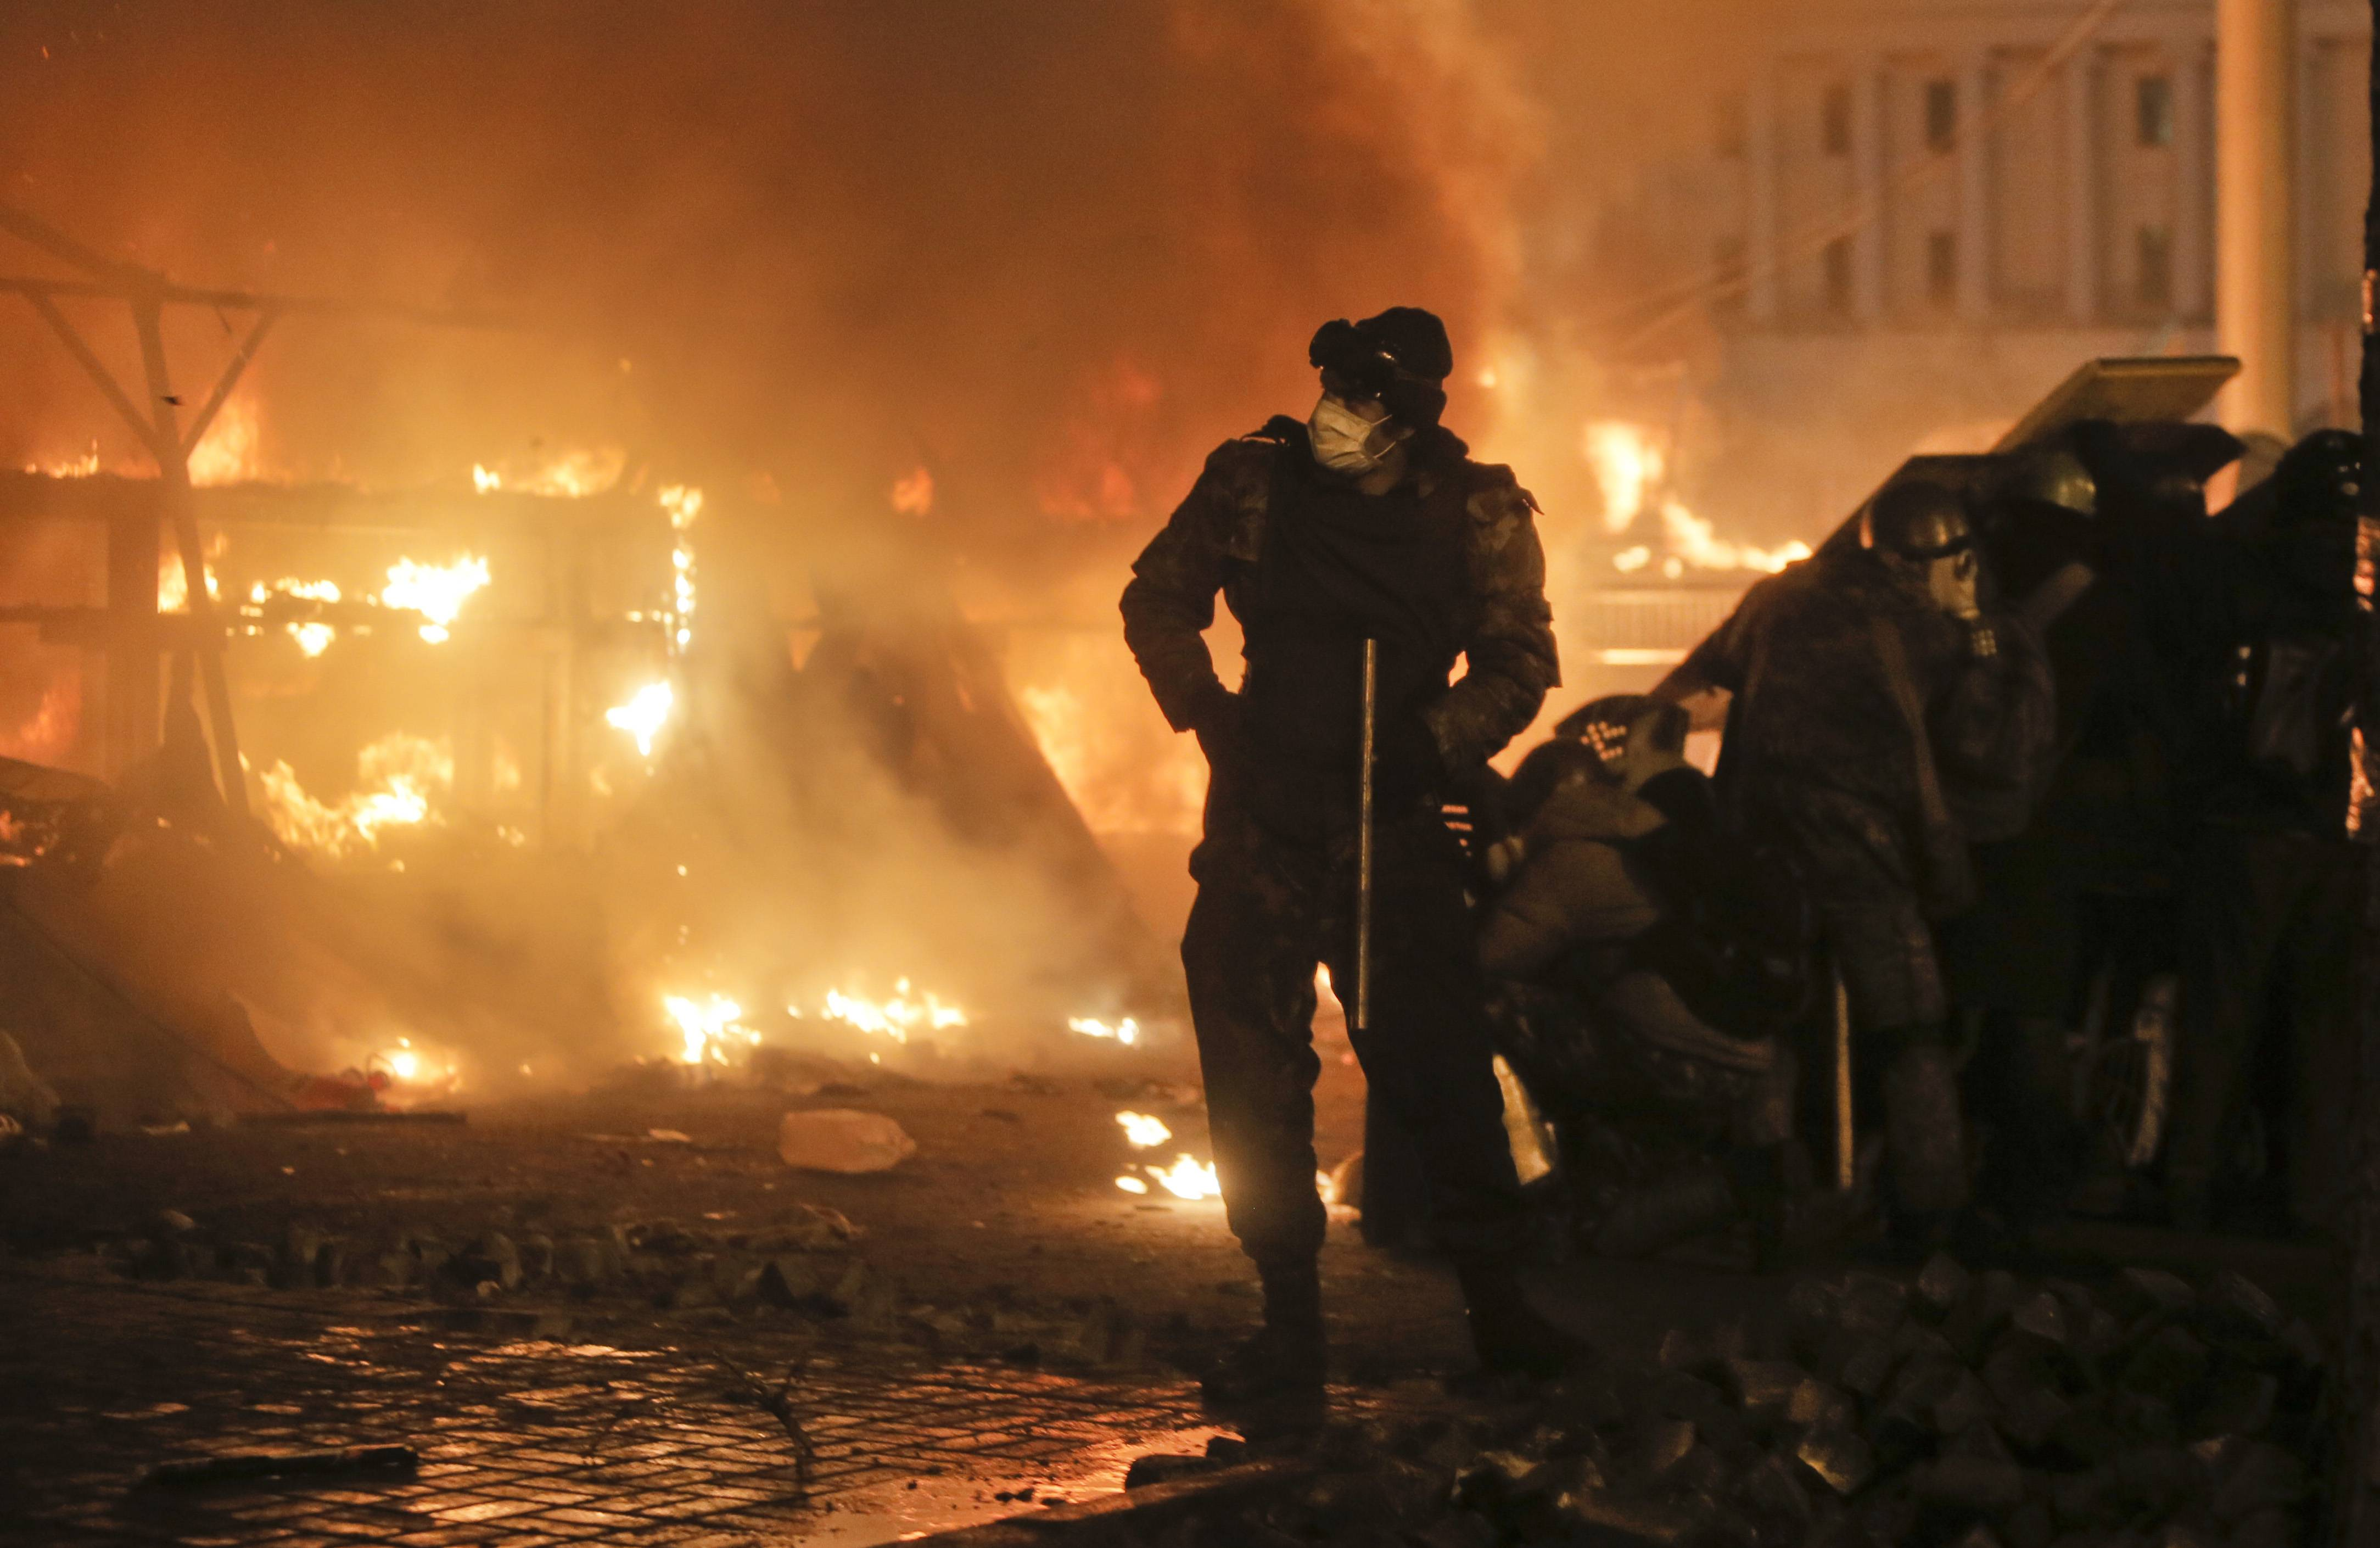 Anti-government protesters clash with riot police in Kiev's Independence Square, the epicenter of the country's unrest. Thousands of police armed with stun grenades and water cannons attacked the large opposition camp in Ukraine's capital on Tuesday.